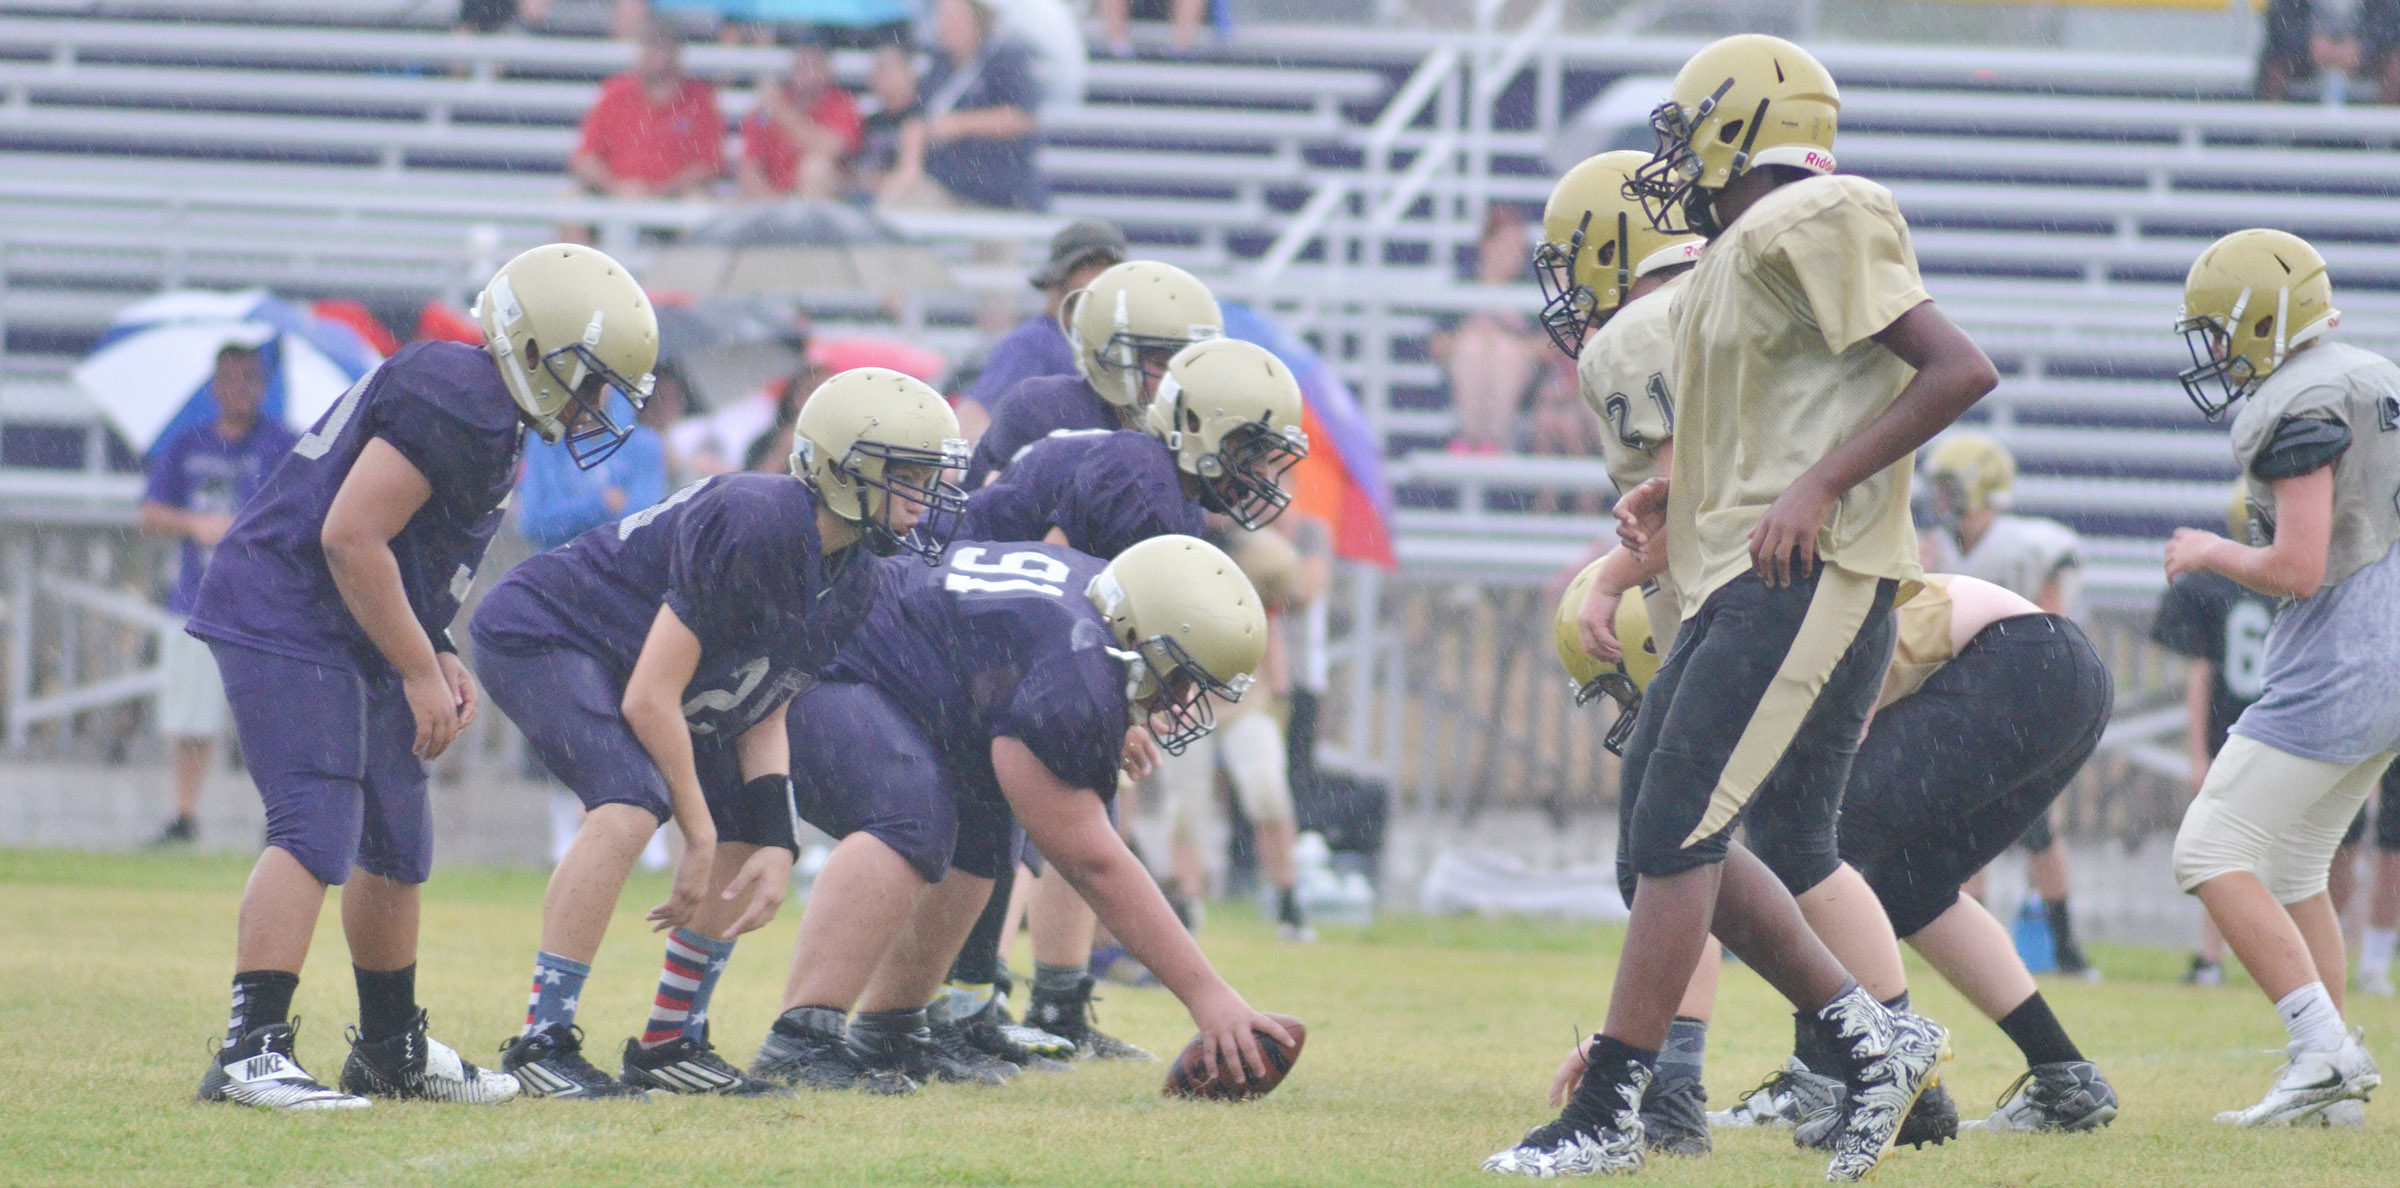 CMS offensive line players get ready for the play.